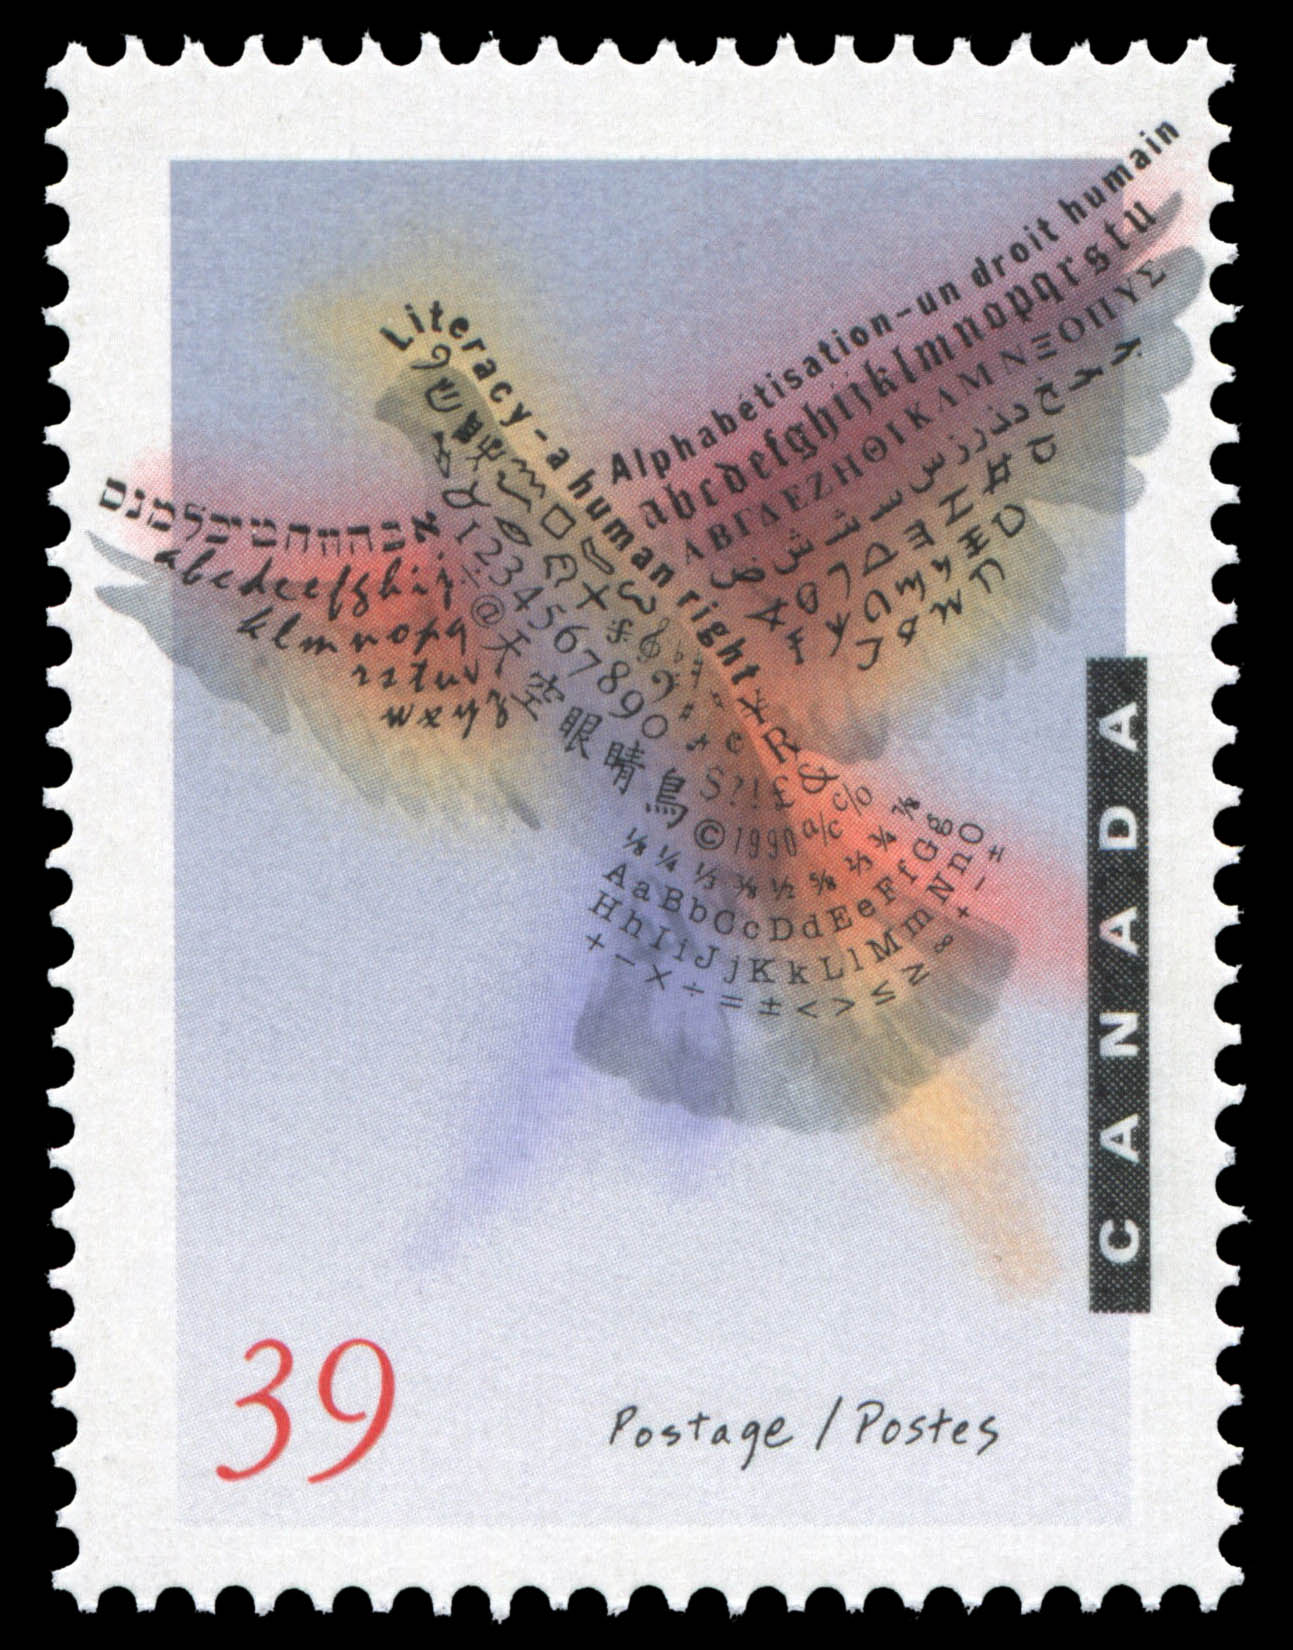 Literacy - A Human Right Canada Postage Stamp